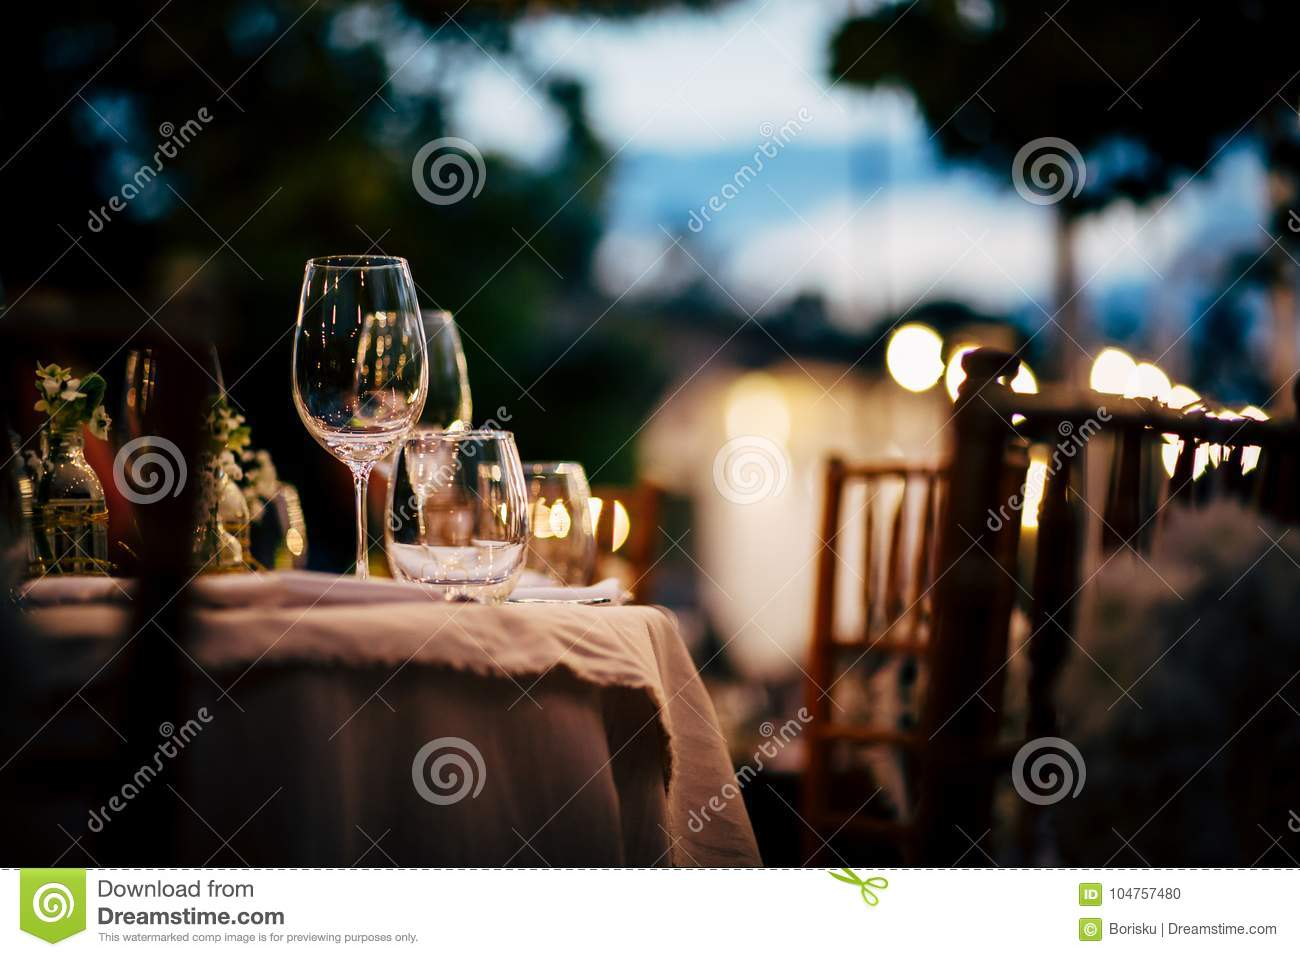 Luxury Table setting for party, Christmas, holidays and weddings